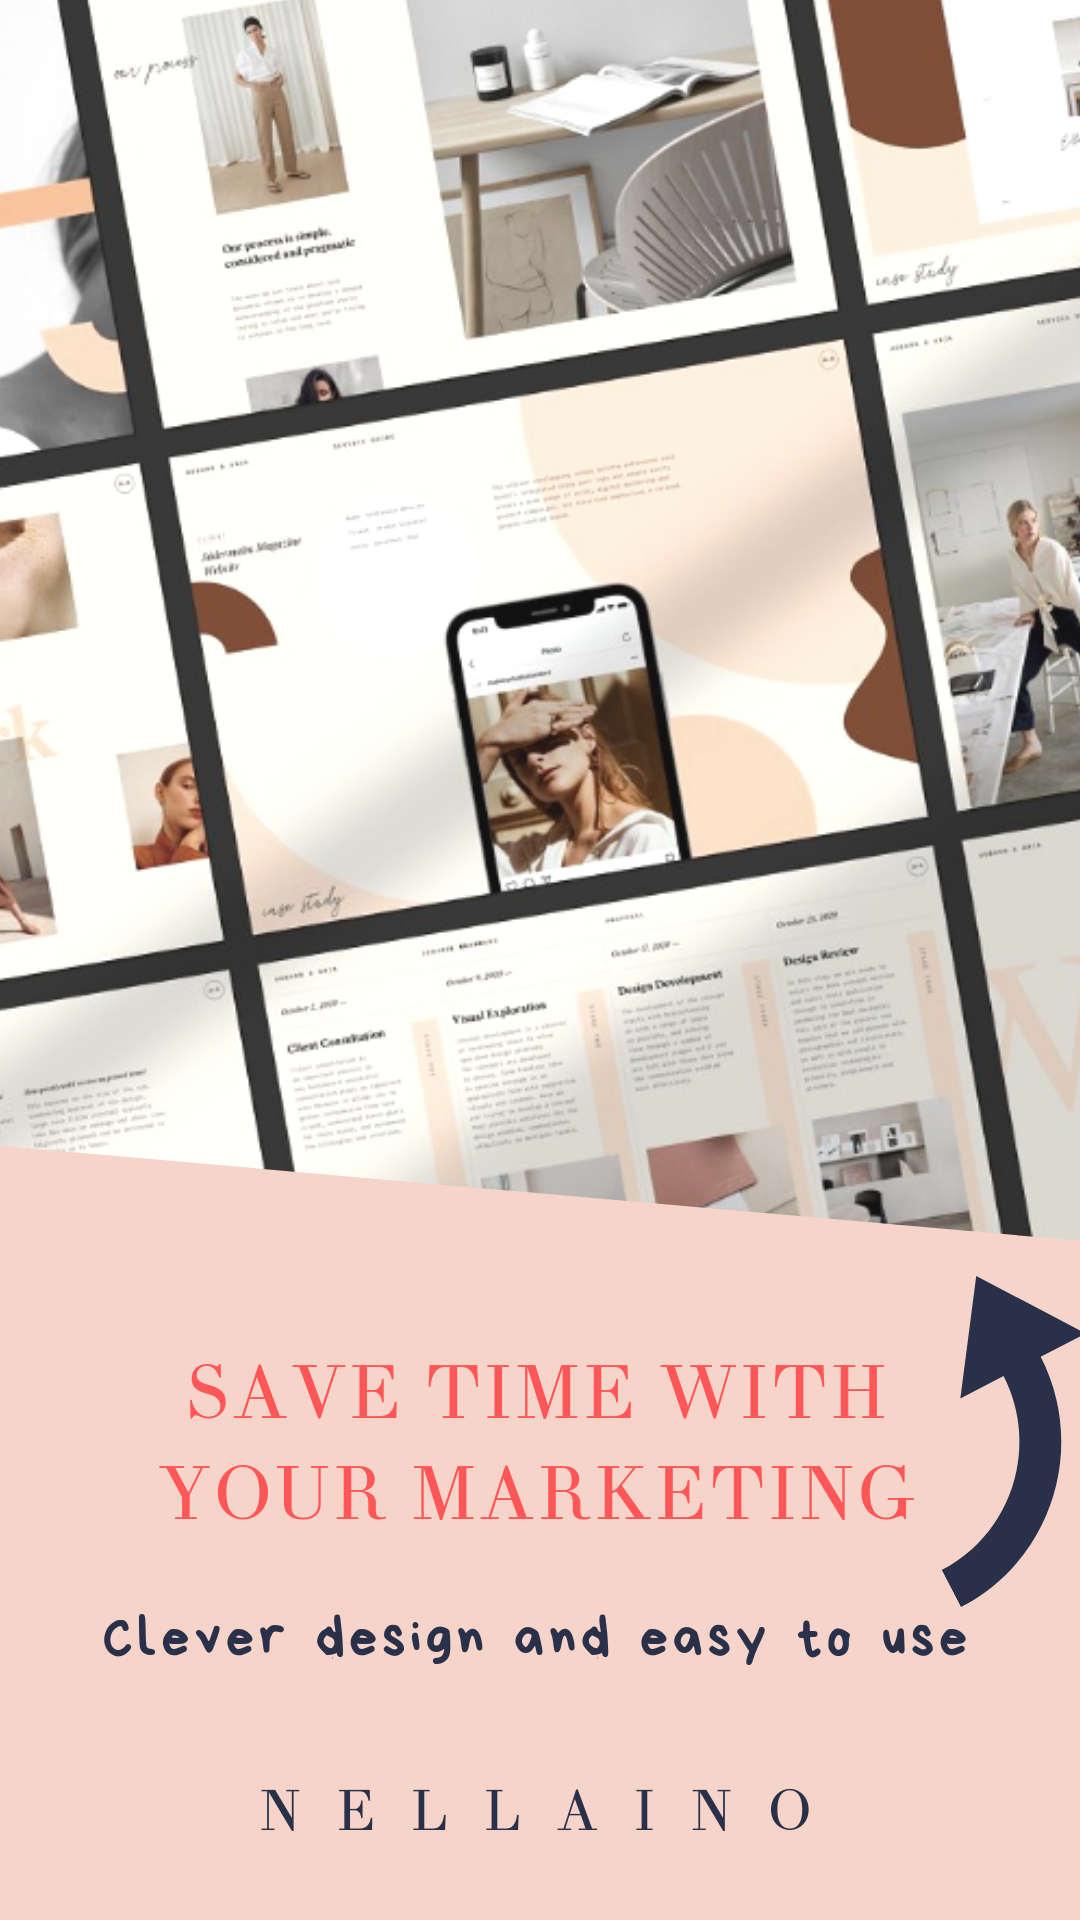 Easy marketing with beautiful templates. Great for small businesses. www.nellaino.com.png